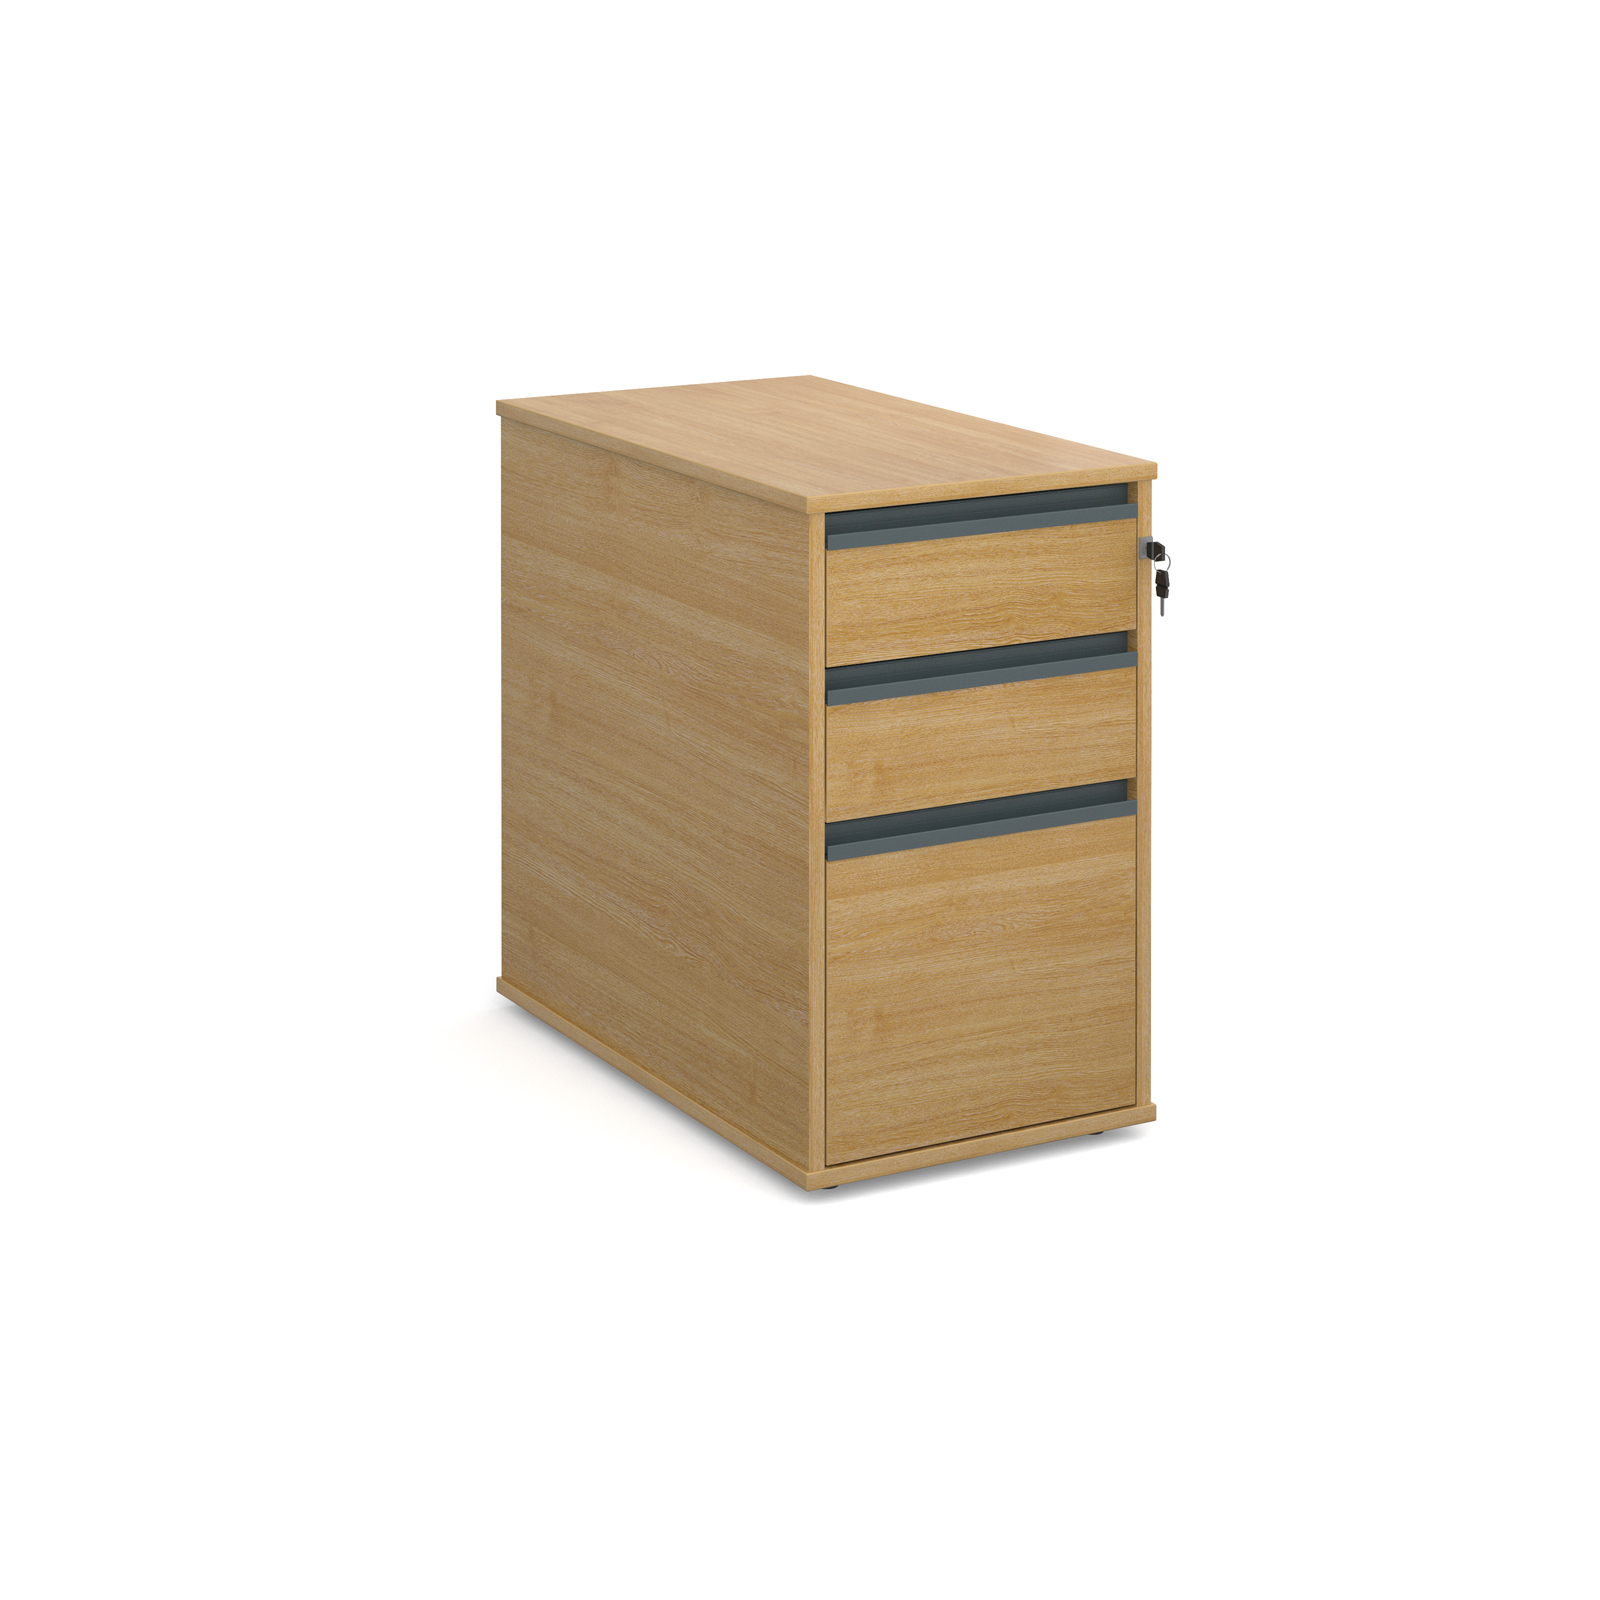 Maestro desk end 3 drawer pedestal 746mm deep - oak